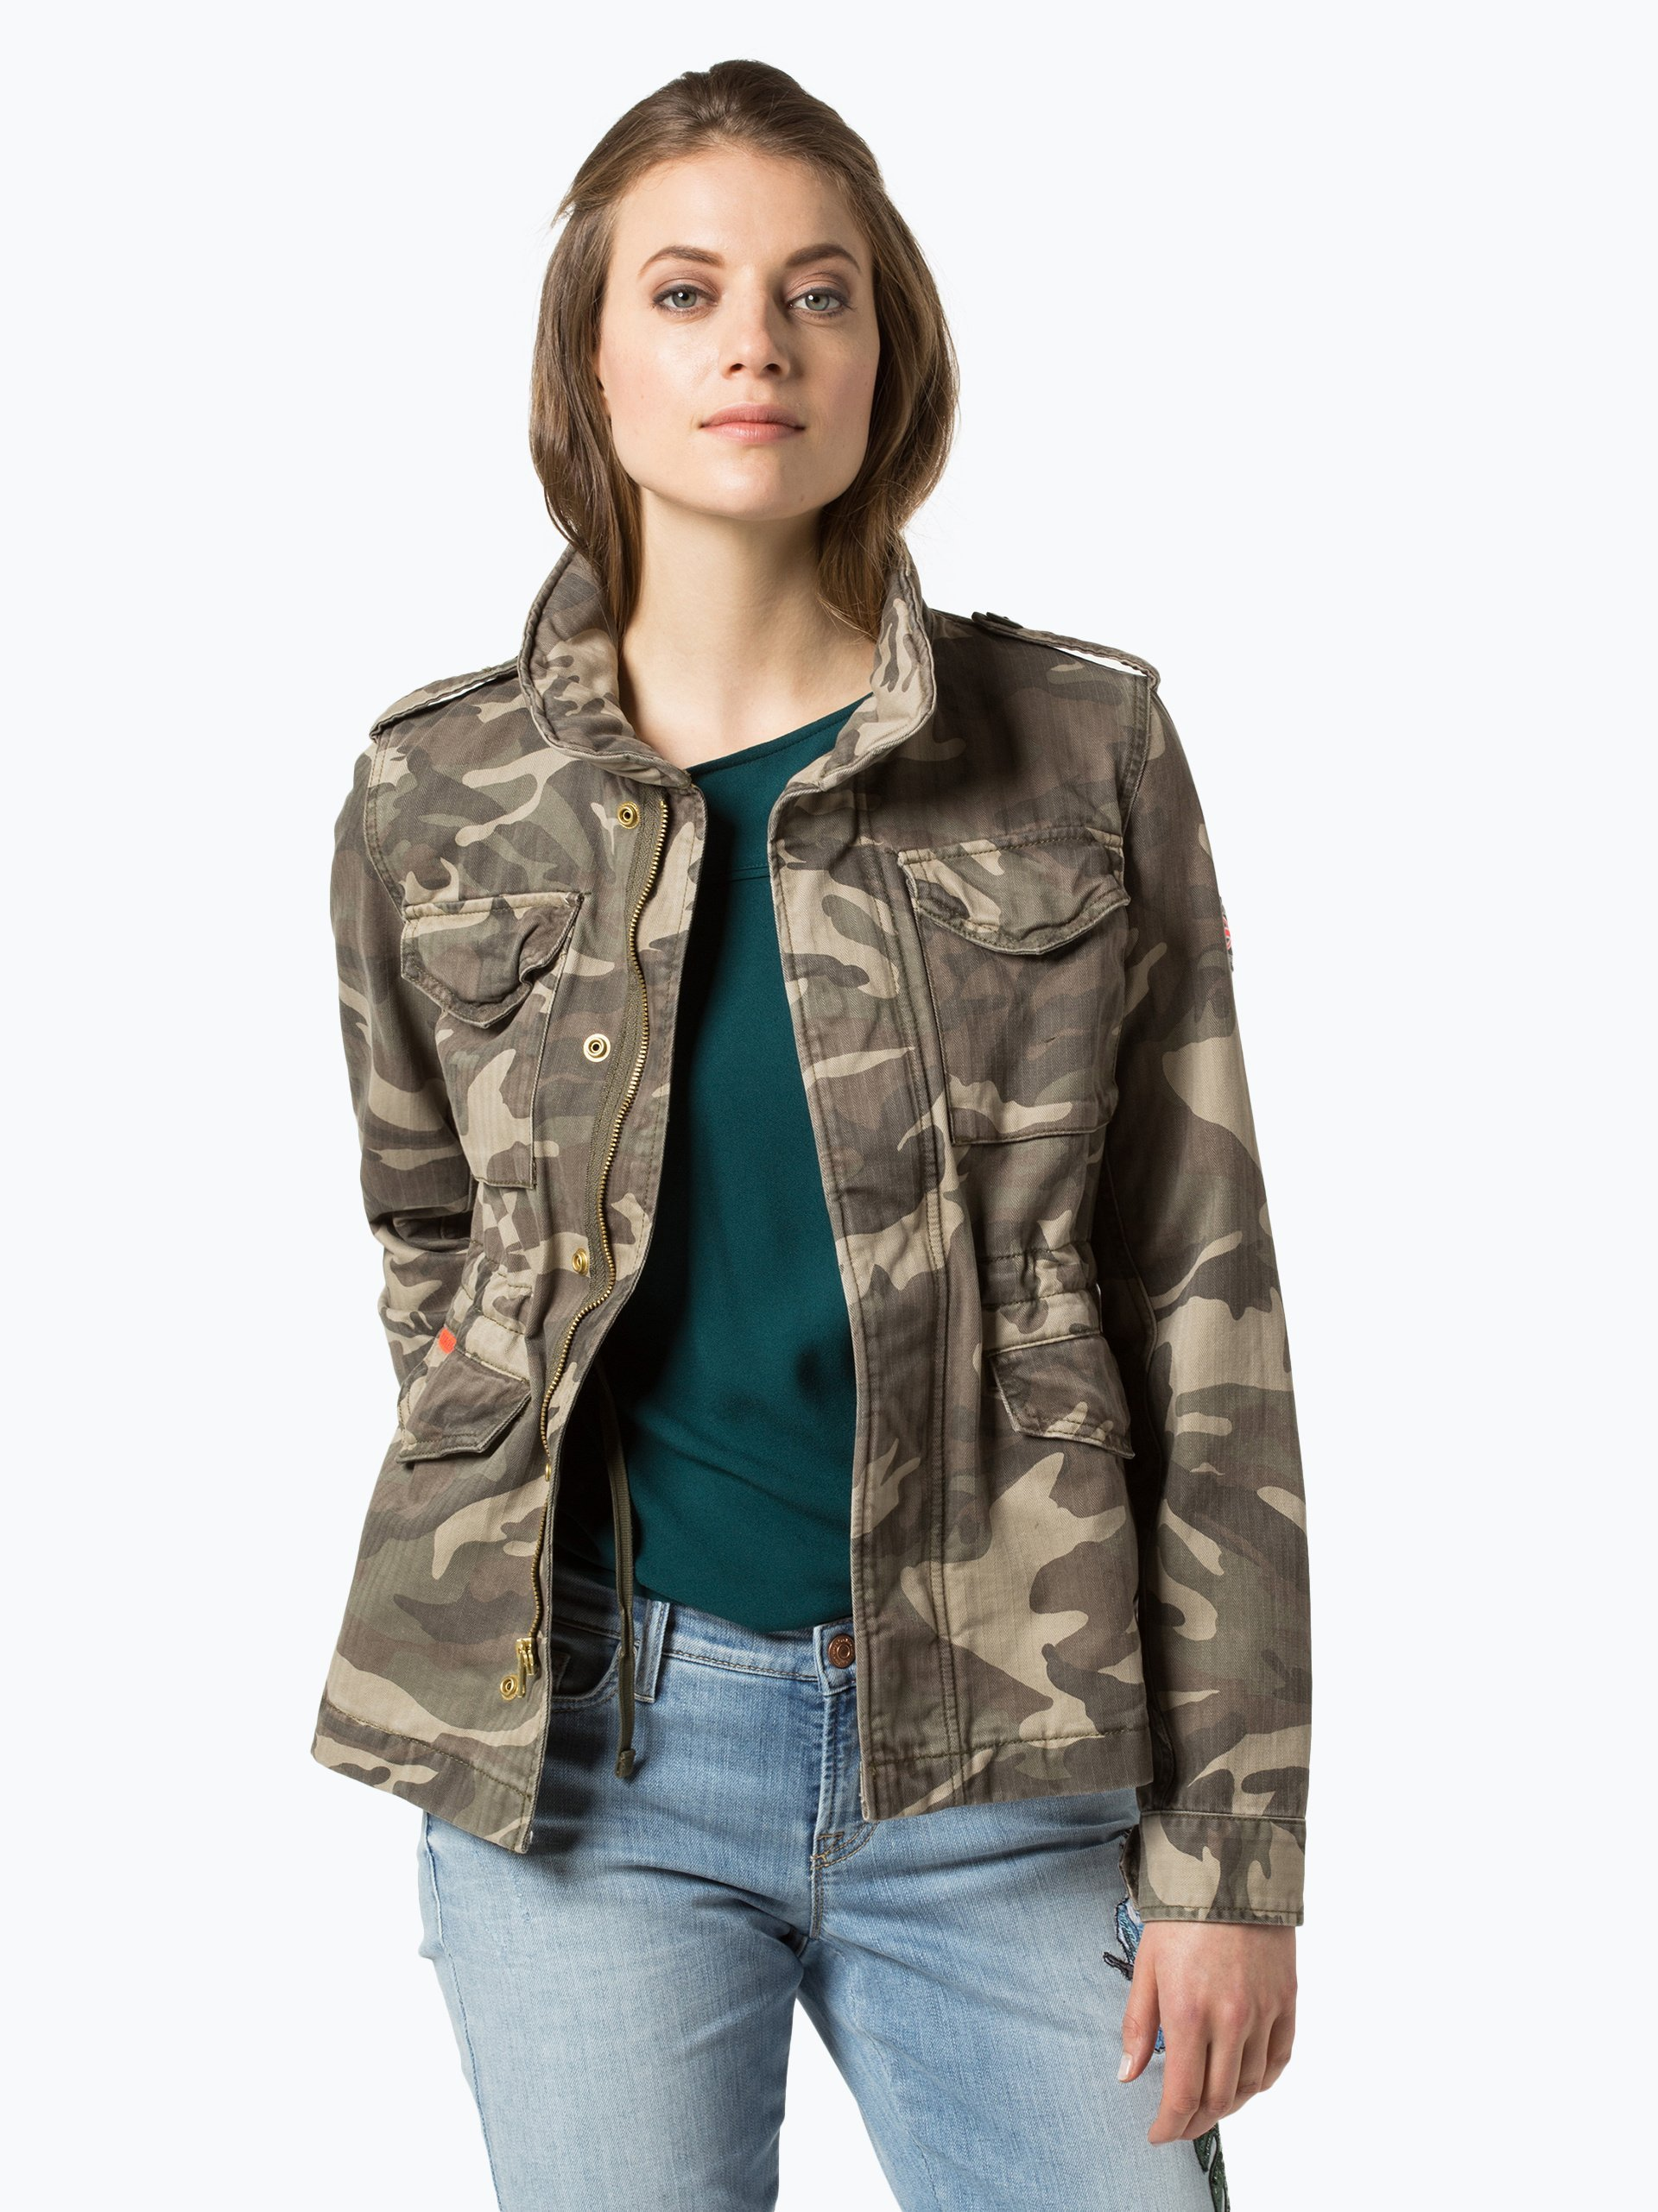 superdry damen jacke gr n kariert online kaufen vangraaf com. Black Bedroom Furniture Sets. Home Design Ideas